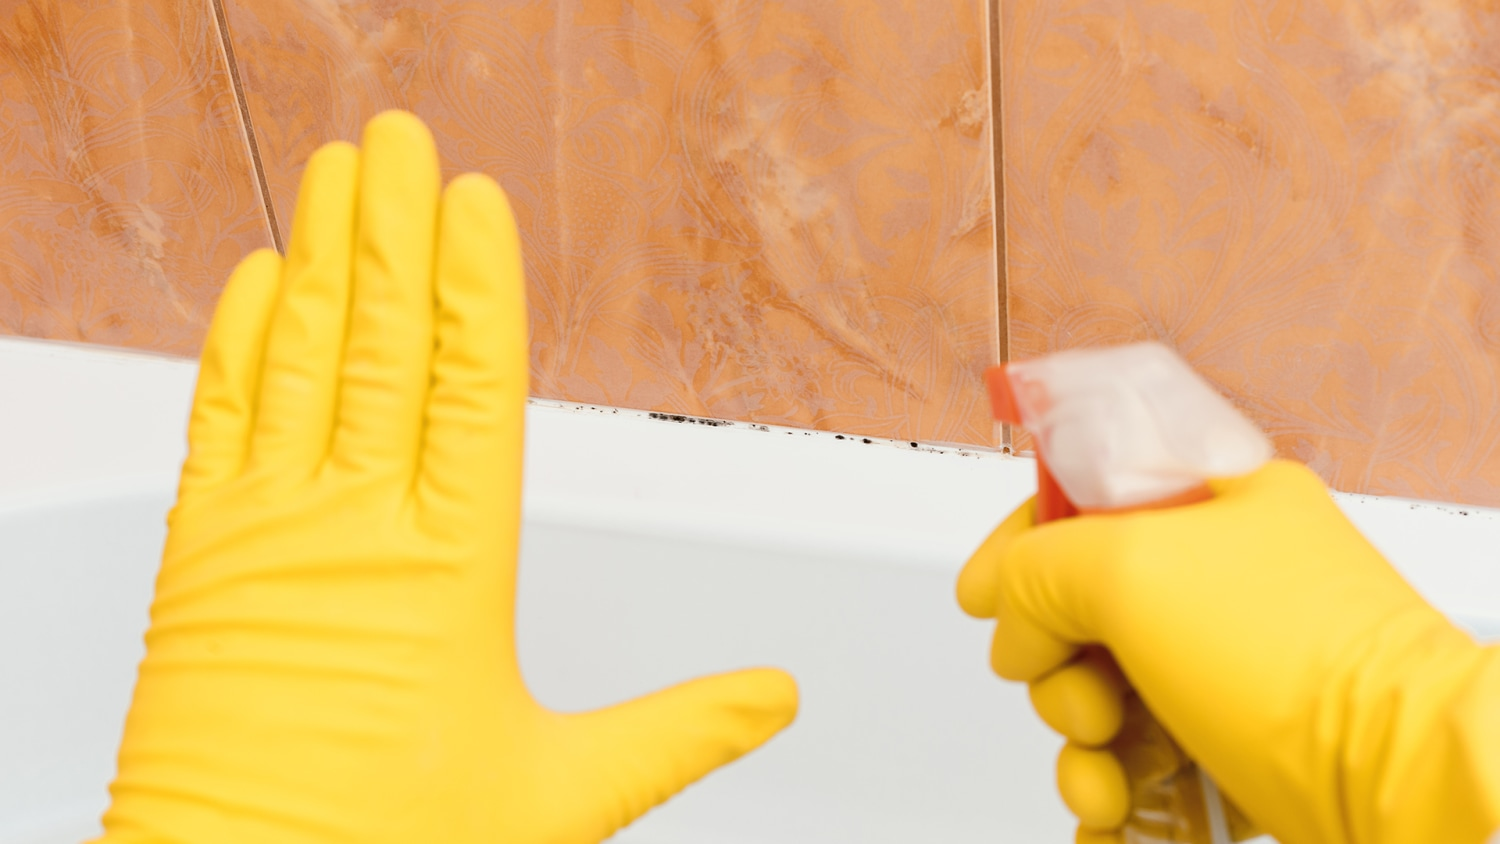 How to remove mold and mildew from walls, clothes and more